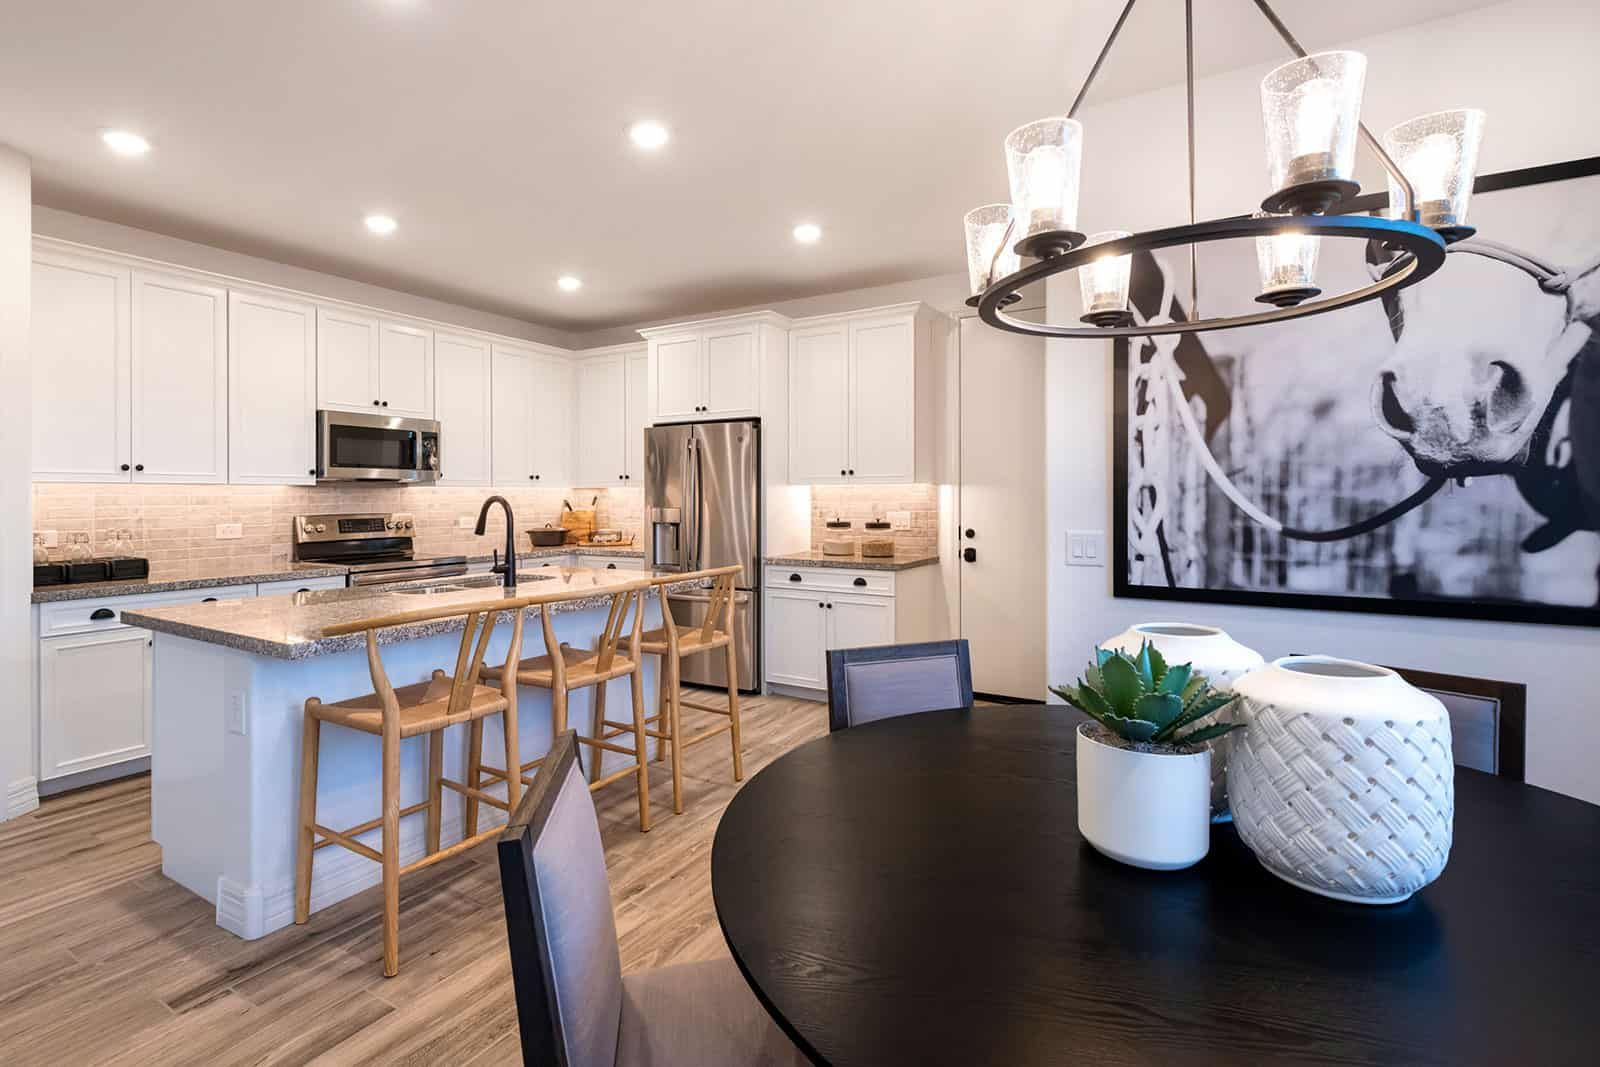 Kitchen featured in the Residence 4 By Tri Pointe Homes in Phoenix-Mesa, AZ